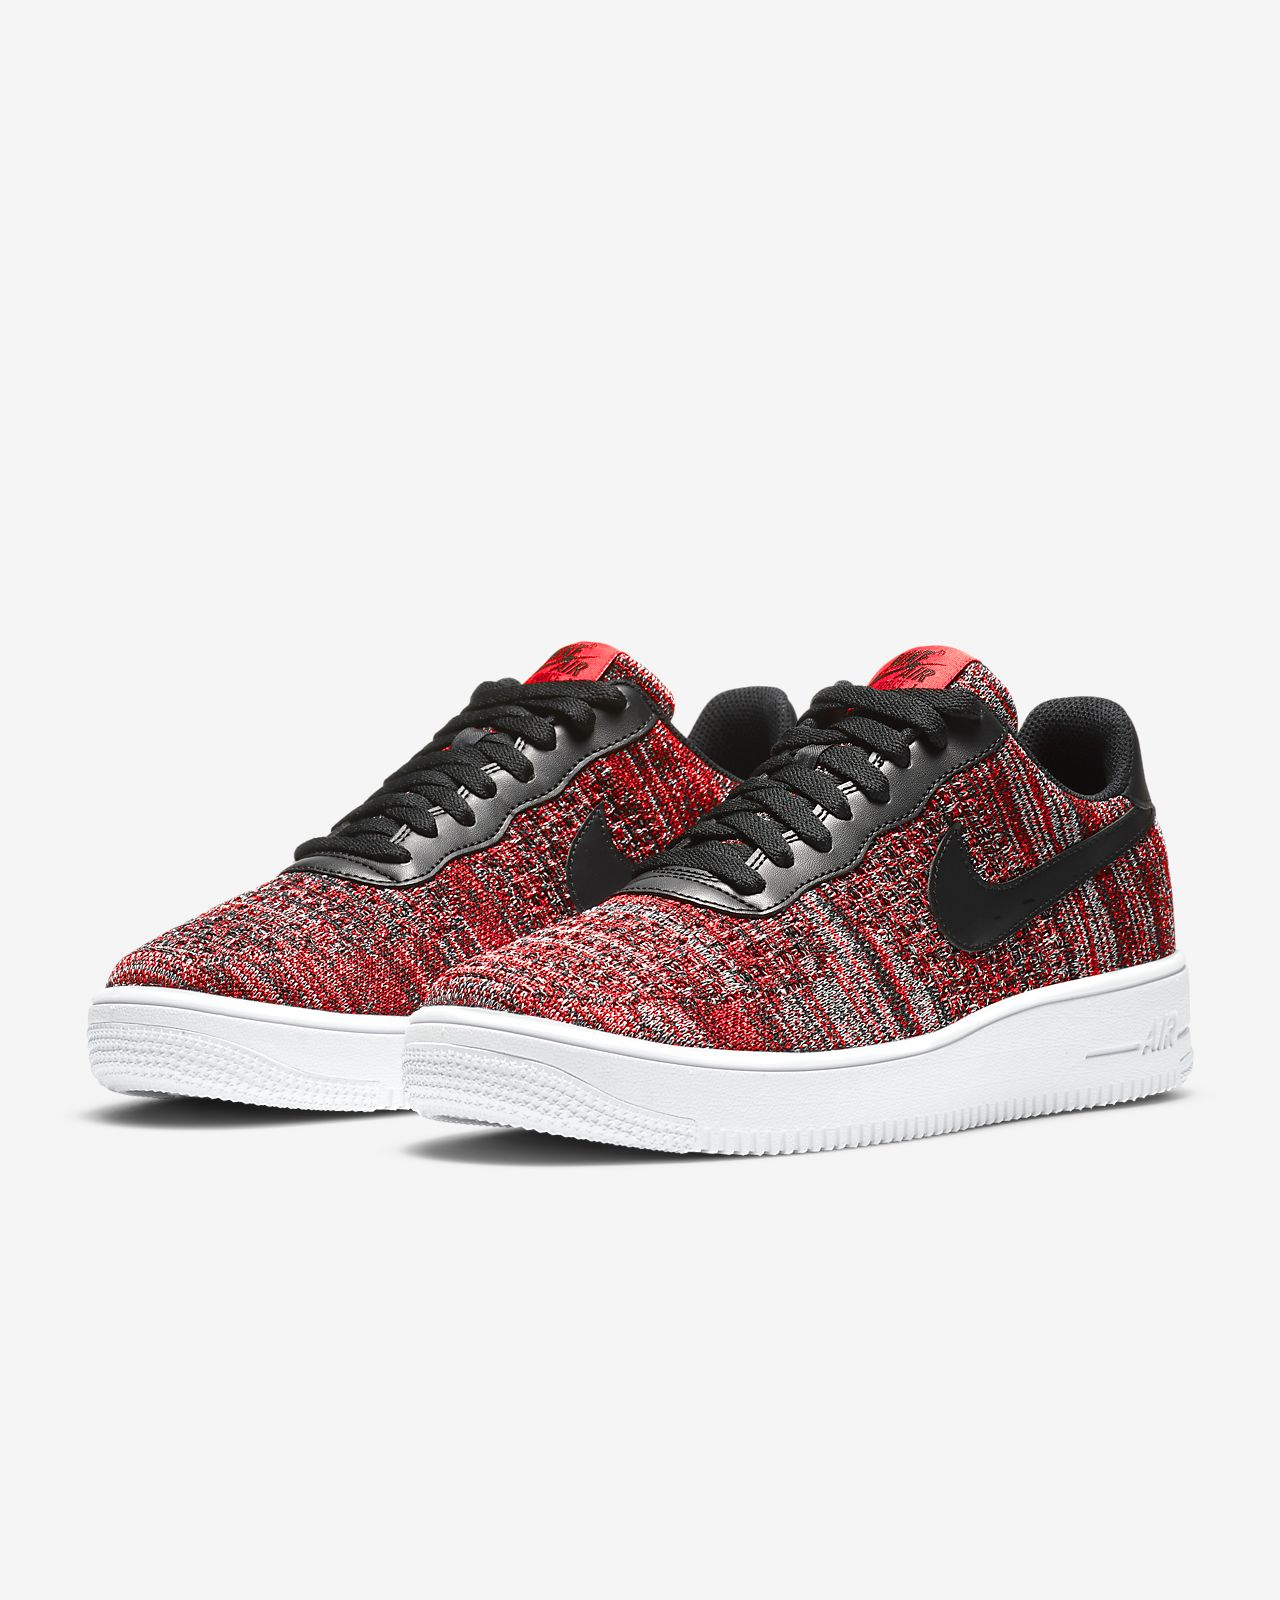 Chaussure Nike Air Force 1 Flyknit 2.0 pour Homme. Nike FR